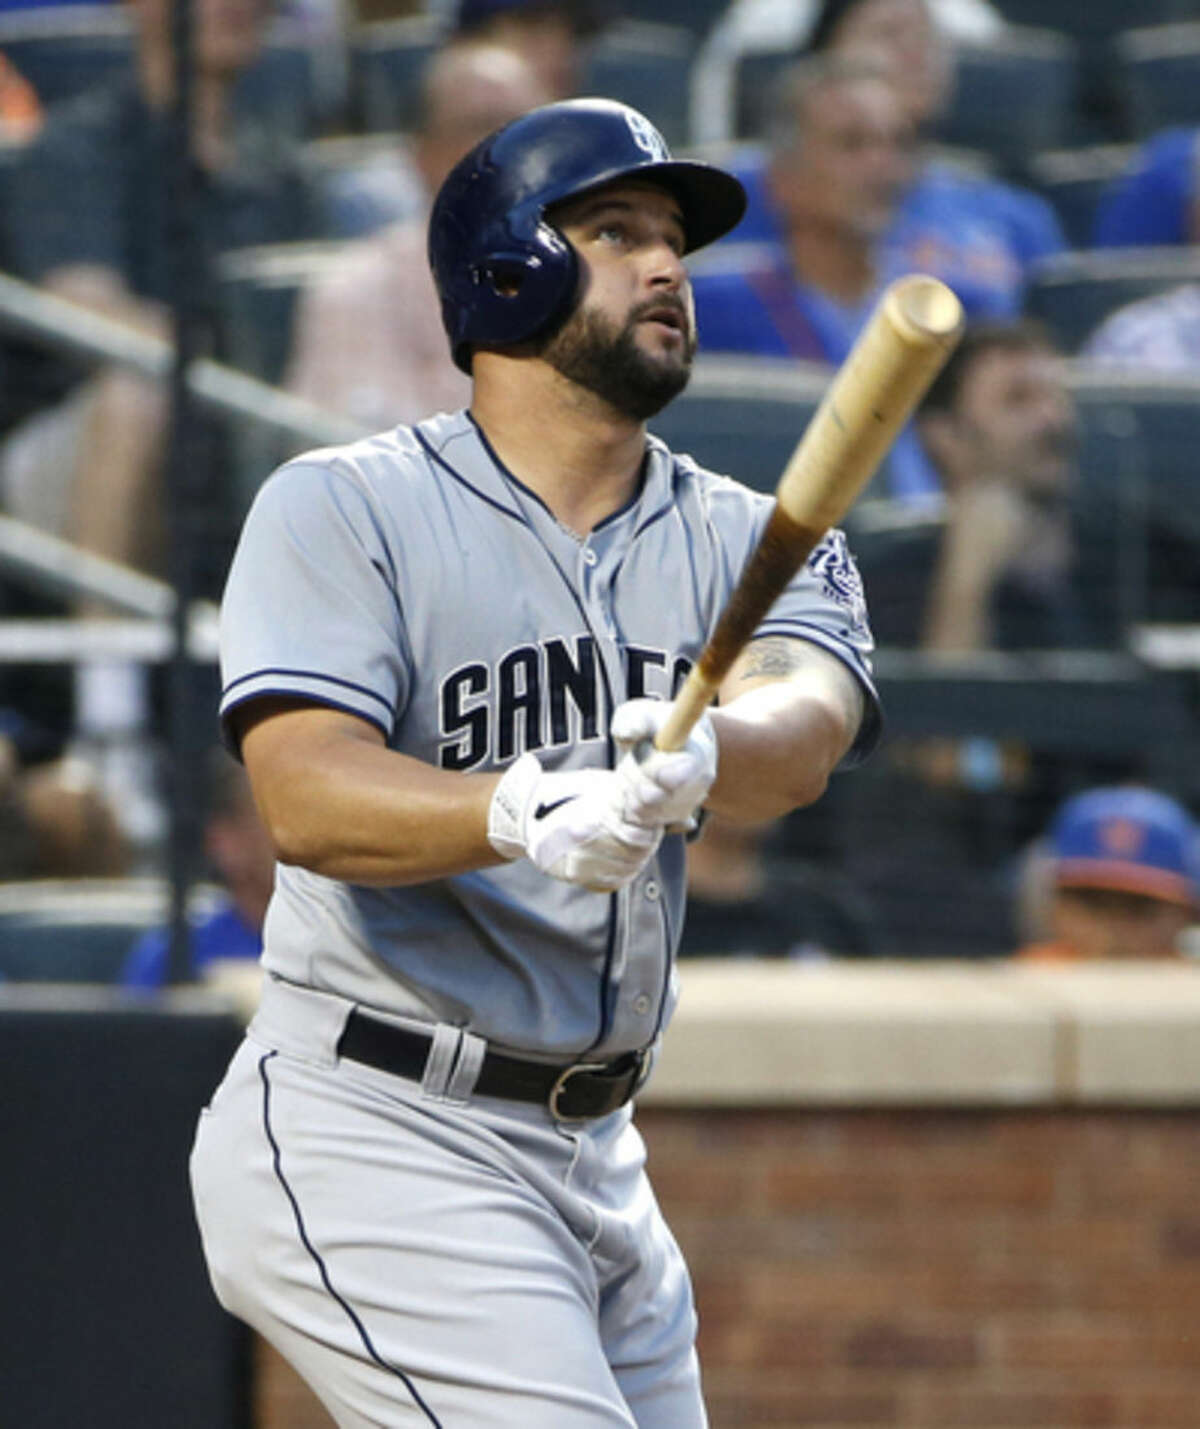 San Diego Padres' Yonder Alonso watches his third-inning solo home run off New York Mets starting pitcher Bartolo Colon in a baseball game in New York, Wednesday, July 29, 2015. (AP Photo/Kathy Willens)